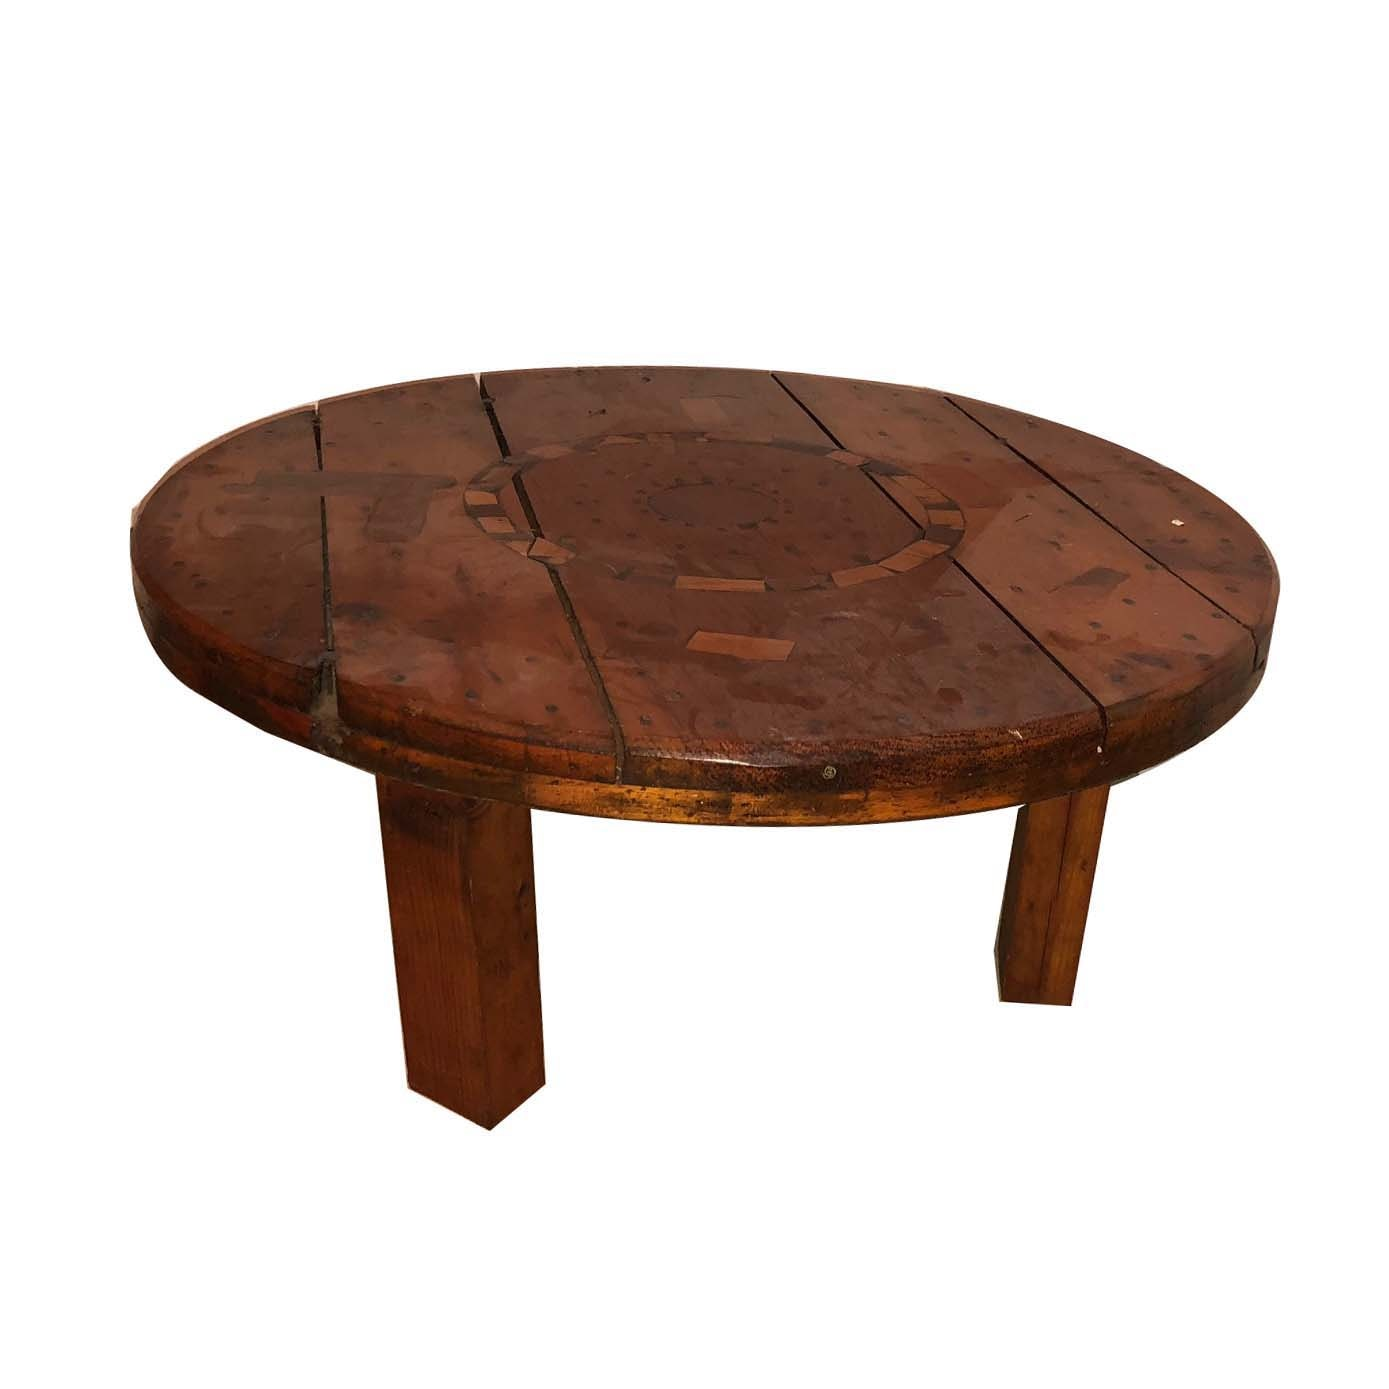 Reclaimed Wood Wire Spool Coffee Table with Marquetry Accents